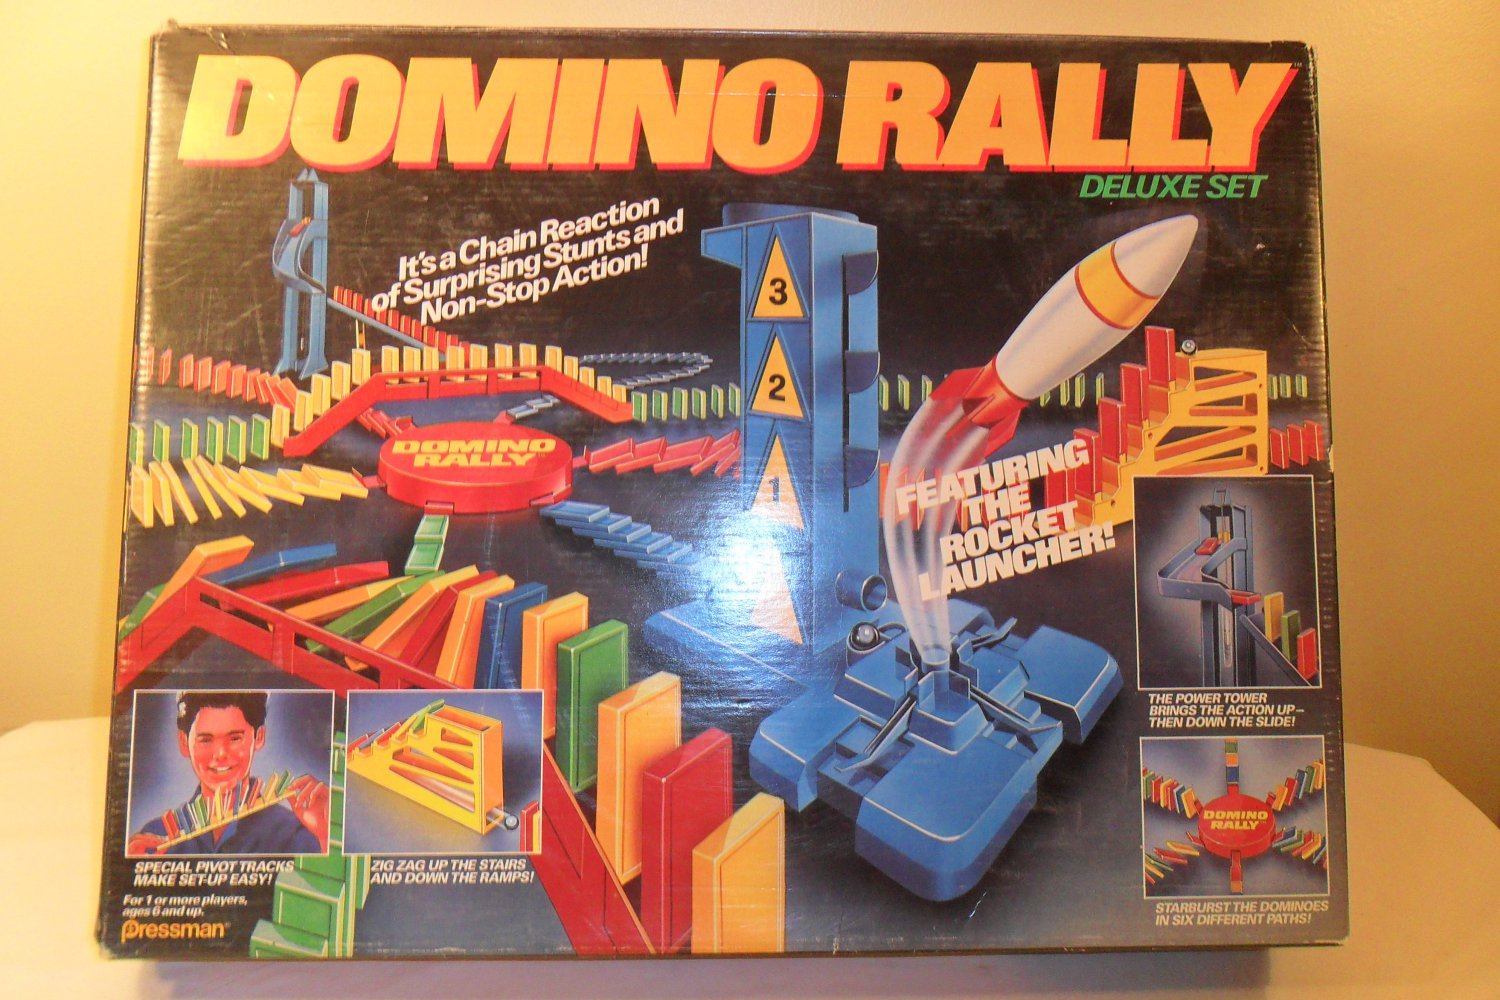 1989 Domino Rally Deluxe Set Featuring the Rocket Launcher (SOLD)